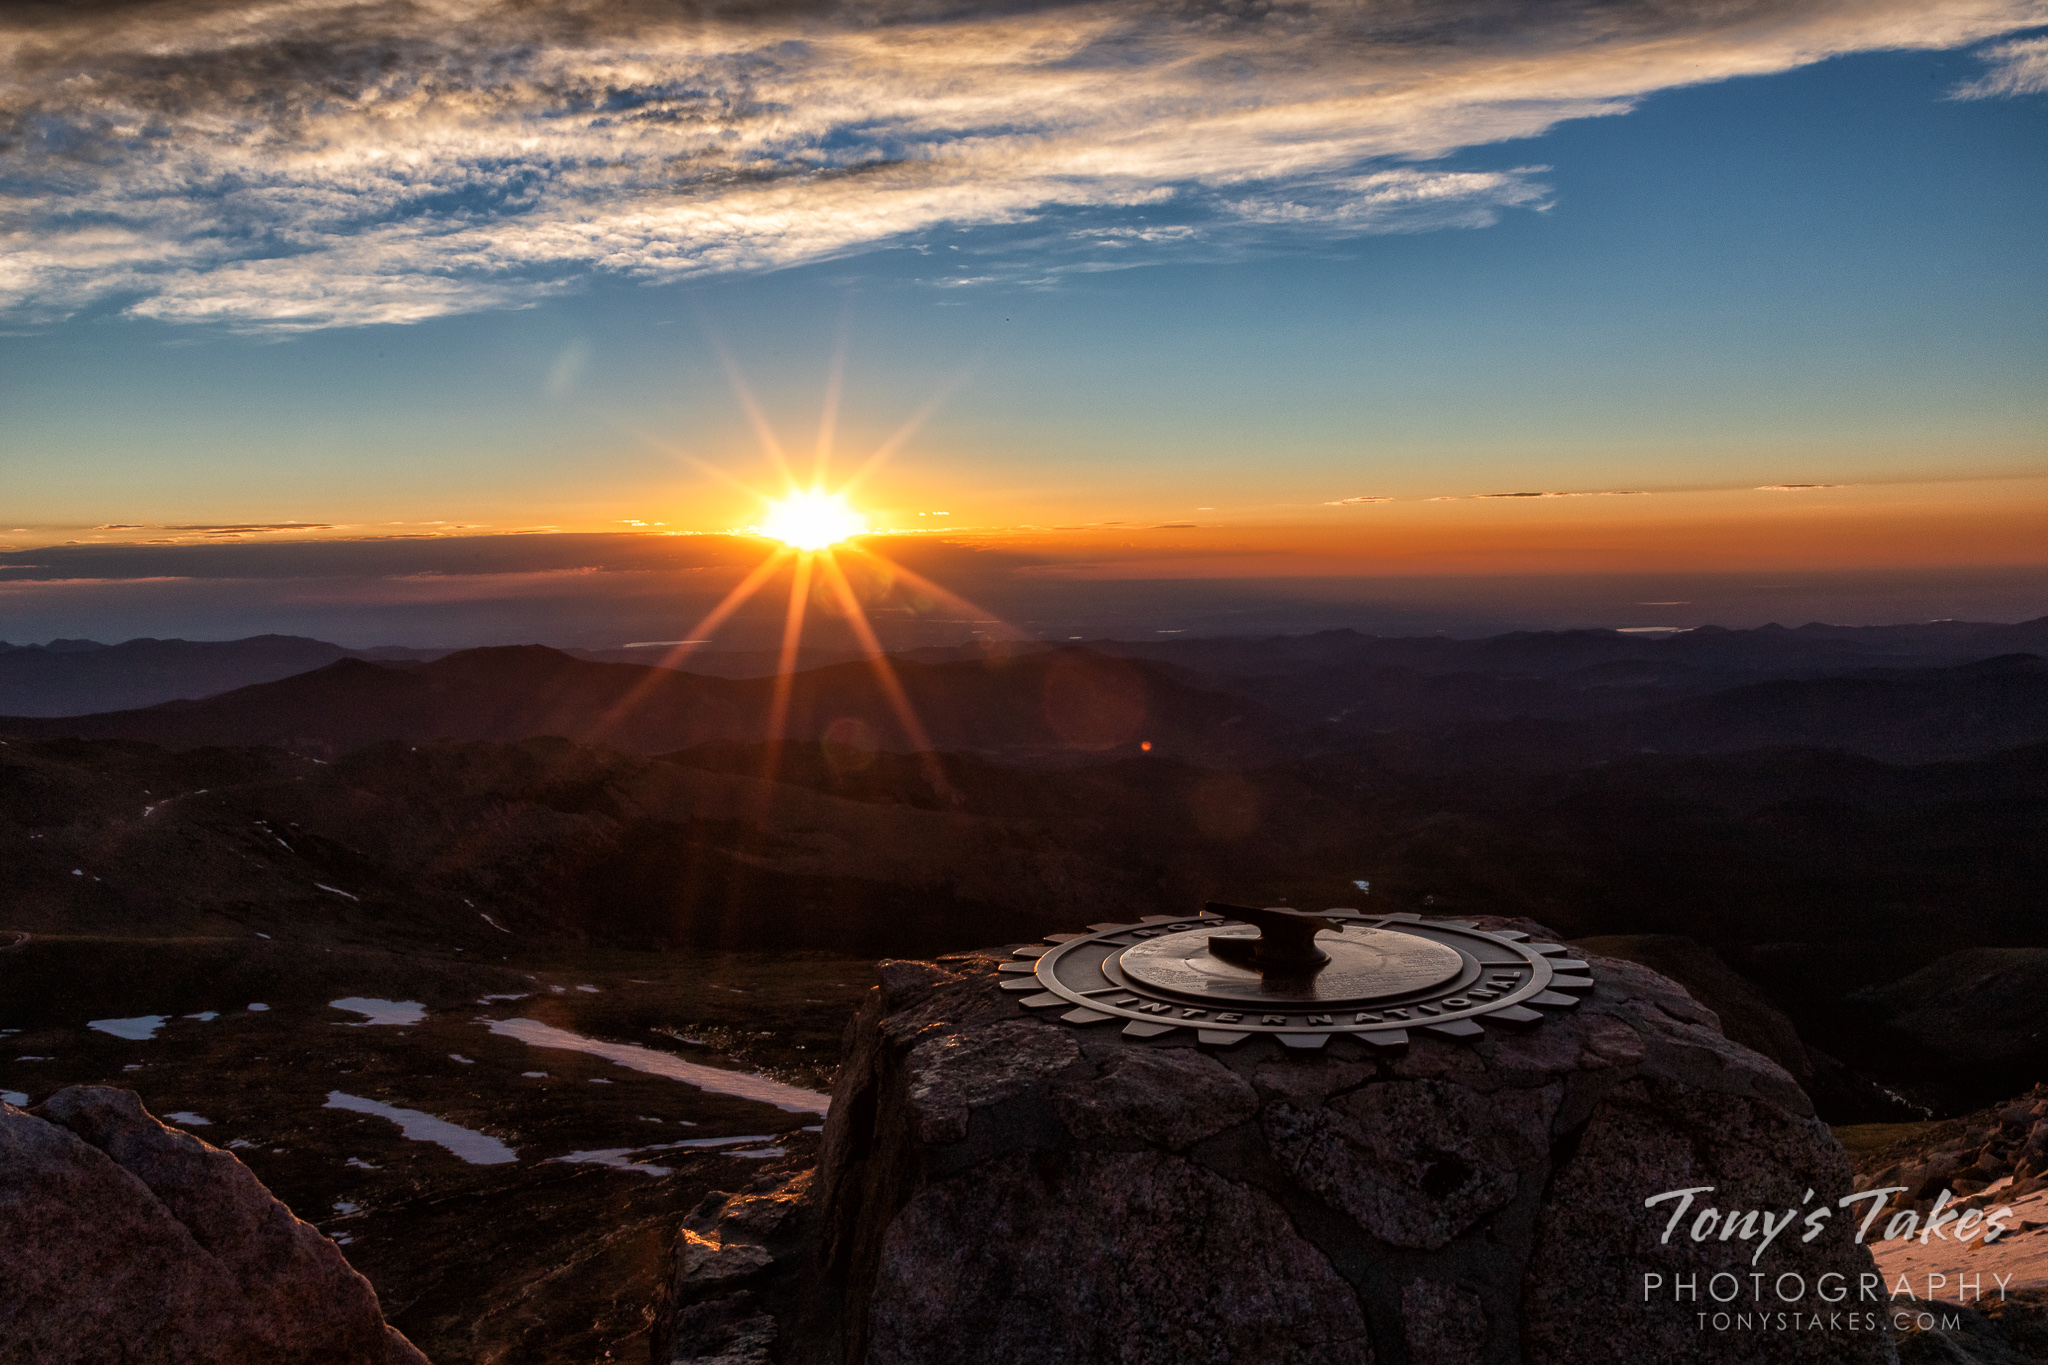 The sun rises over the horizon as seen from the top of Mount Evans in Colorado. (© Tony's Takes)